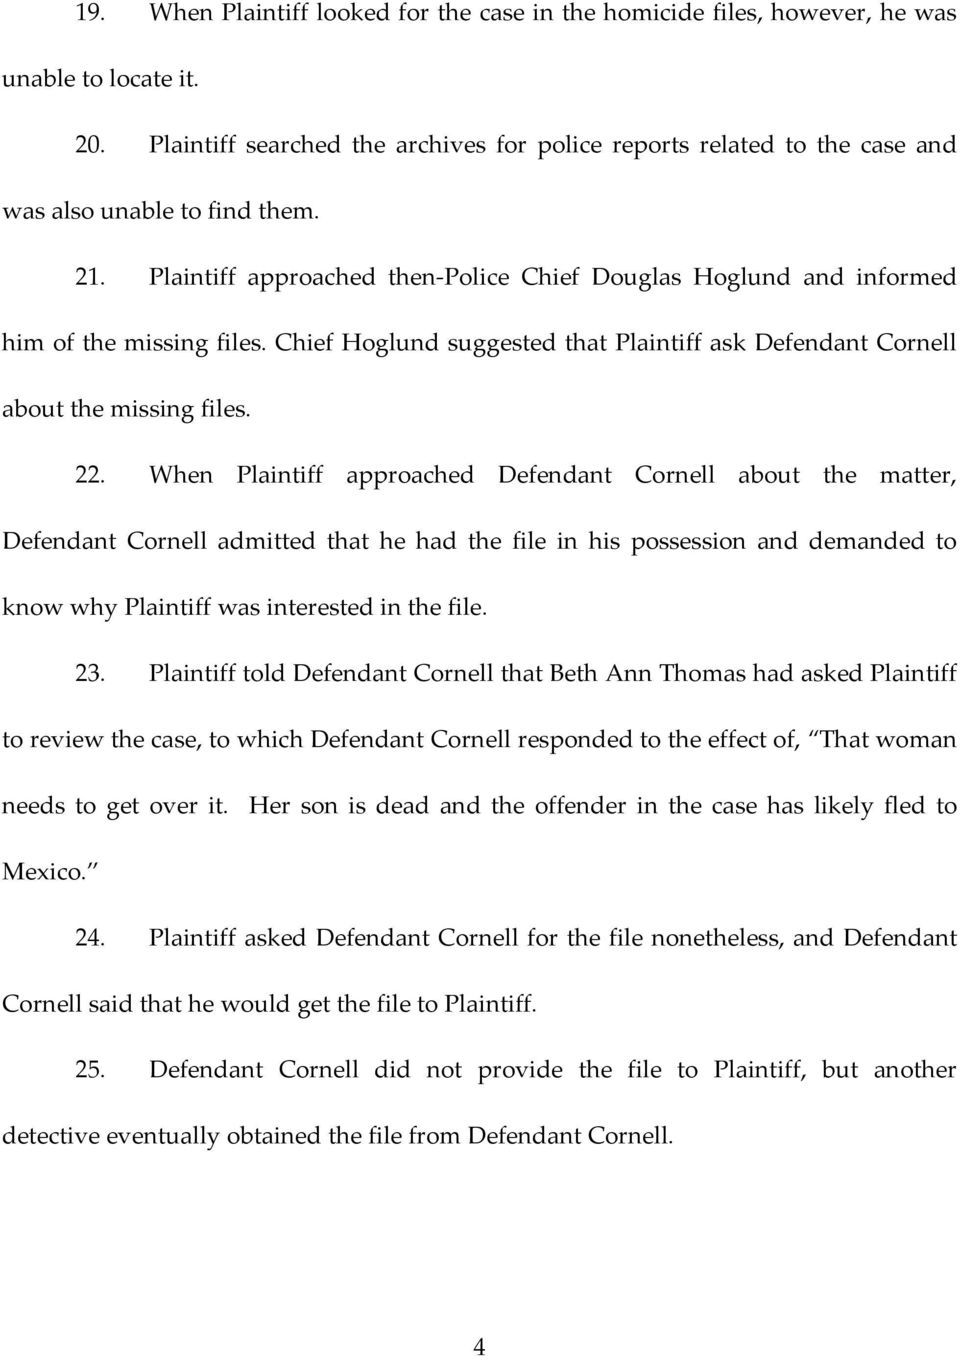 Plaintiff approached then Police Chief Douglas Hoglund and informed him of the missing files. Chief Hoglund suggested that Plaintiff ask Defendant Cornell about the missing files. 22.